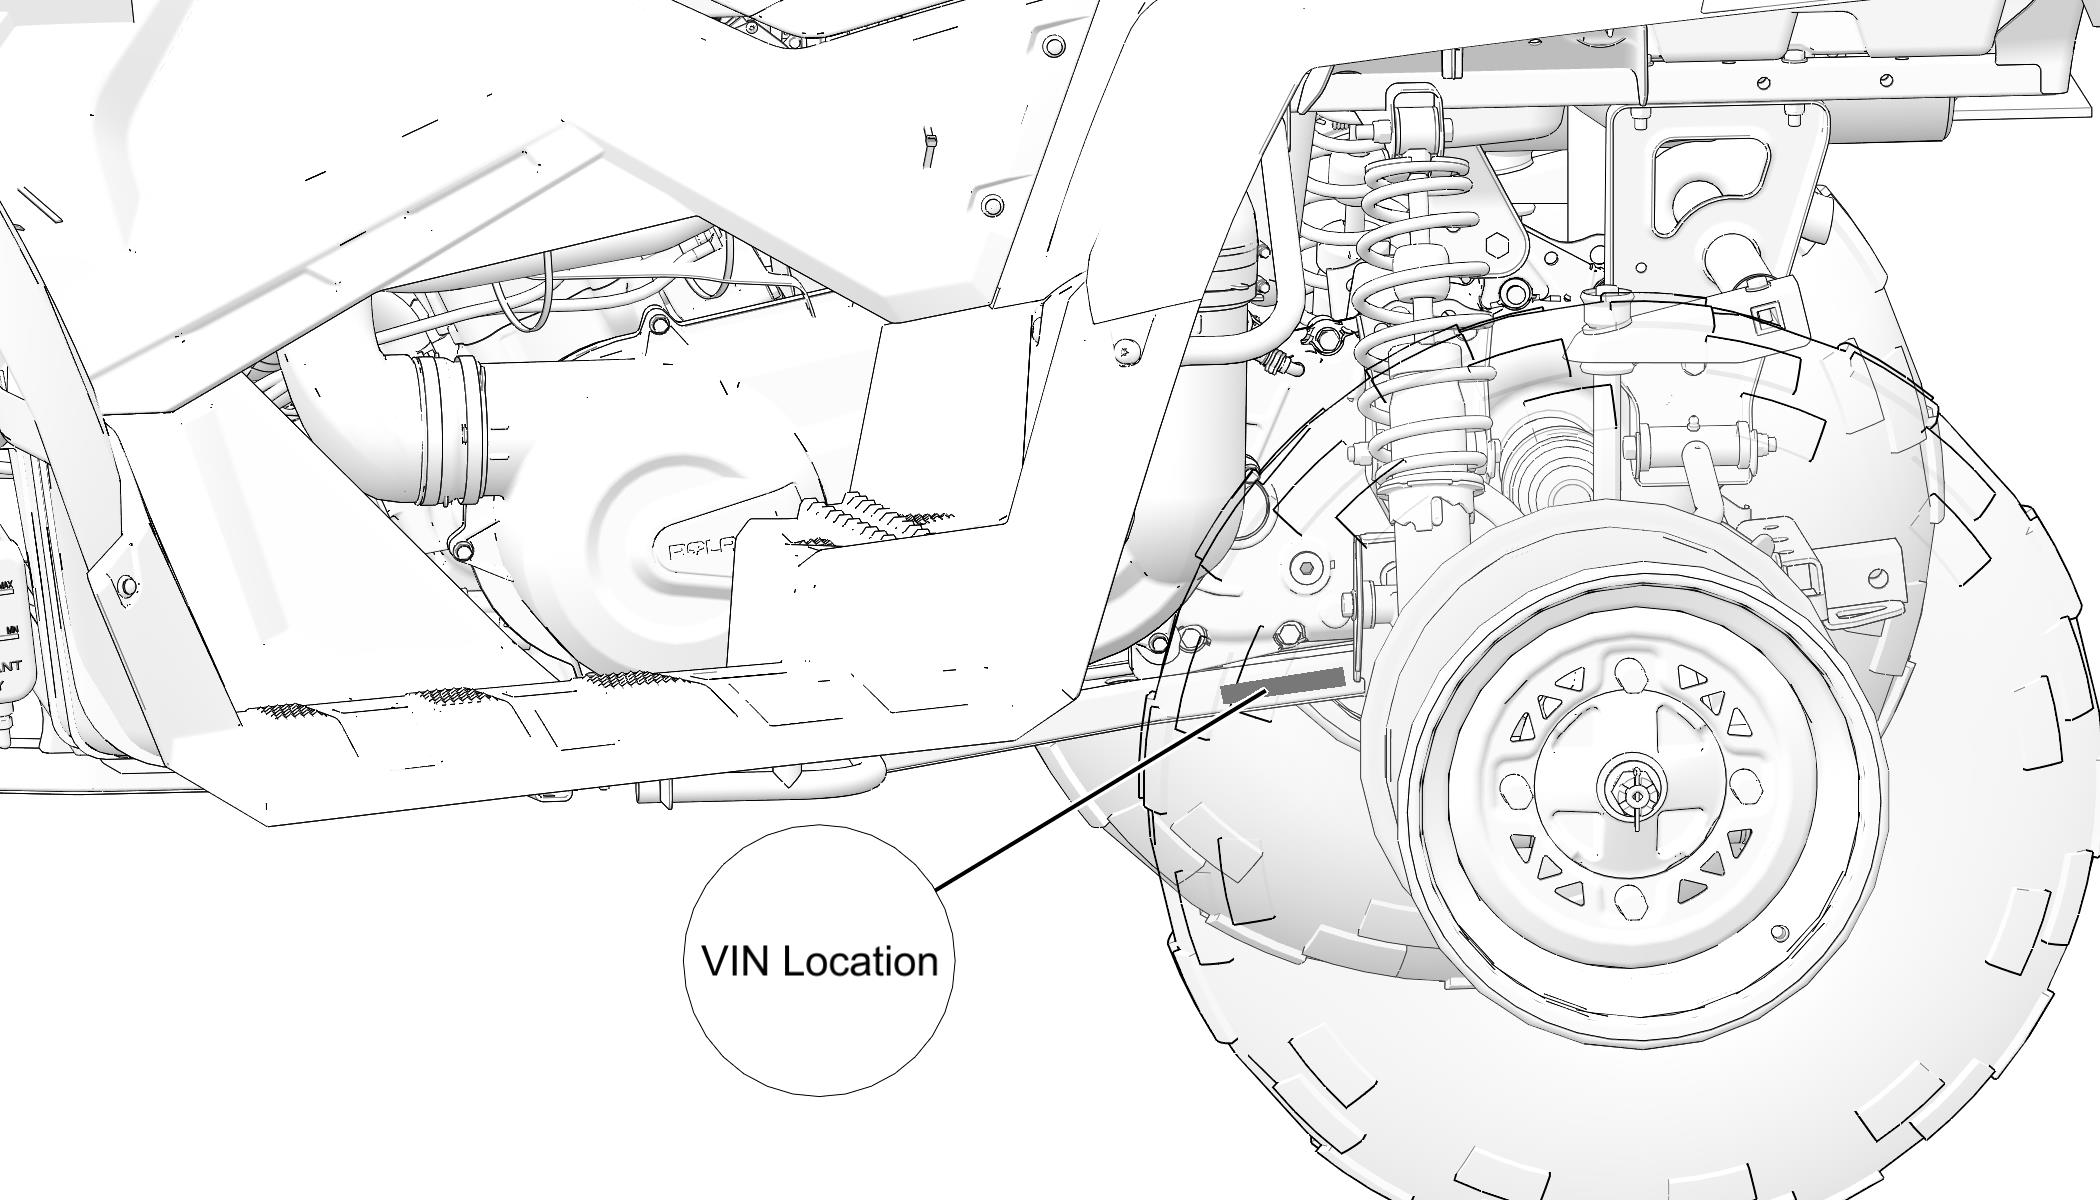 Honda Foreman Transmission Diagram Com